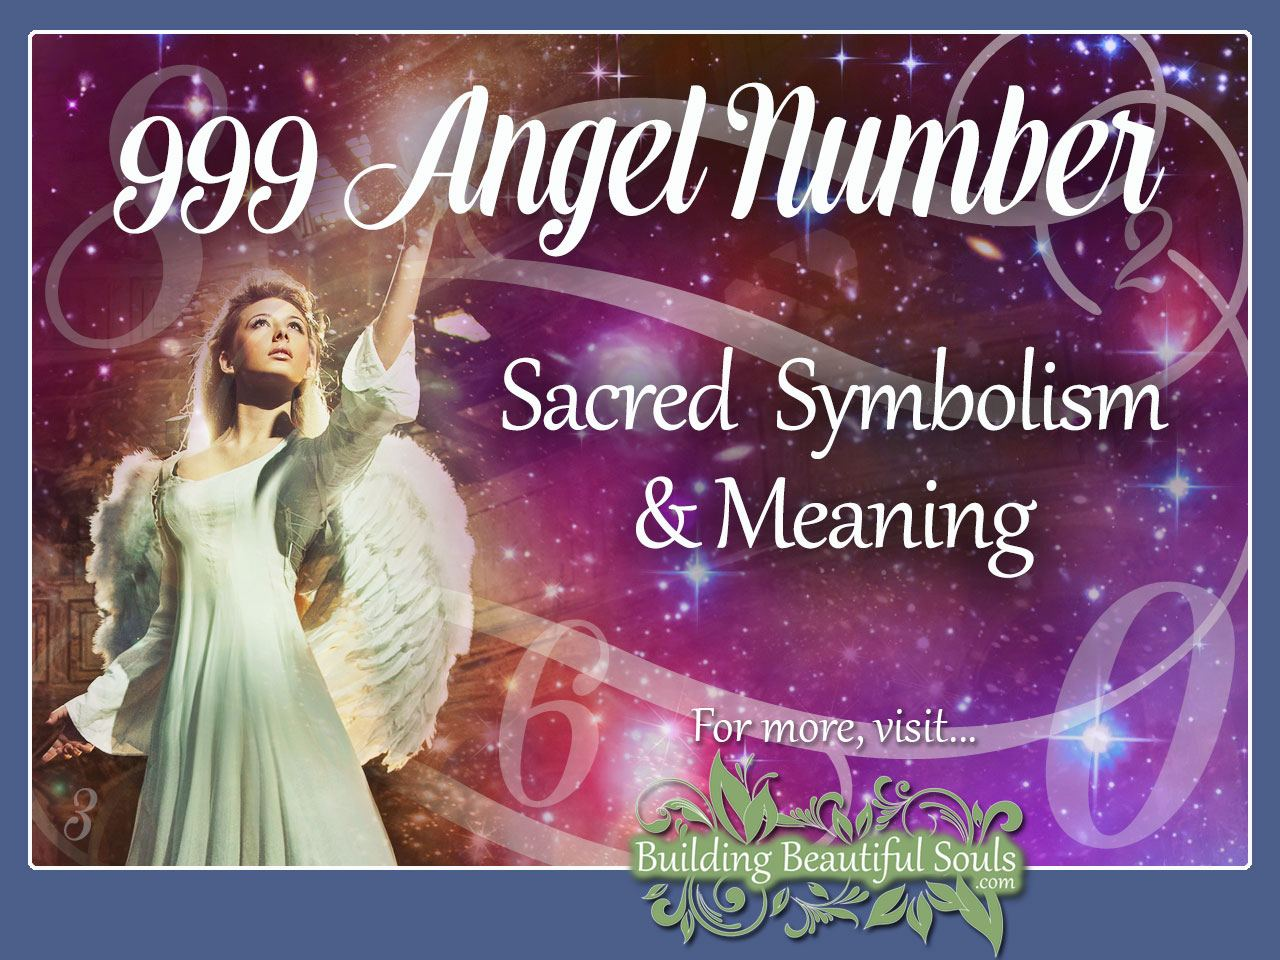 999 Angel Number | What Does 999 Mean in Spiritual, Love, Numerology